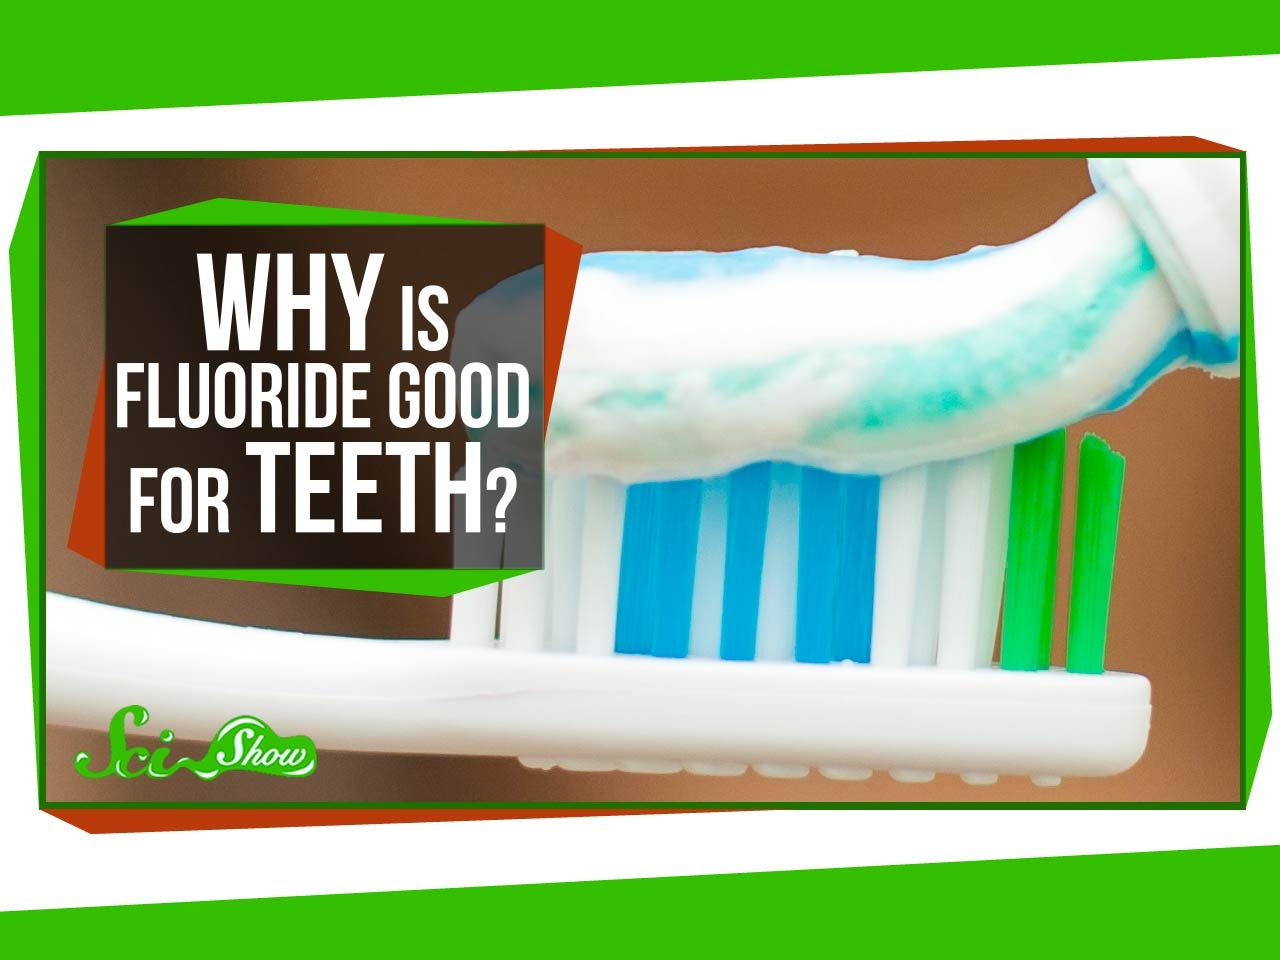 why fluoride is good for teeth and how it helps prevent